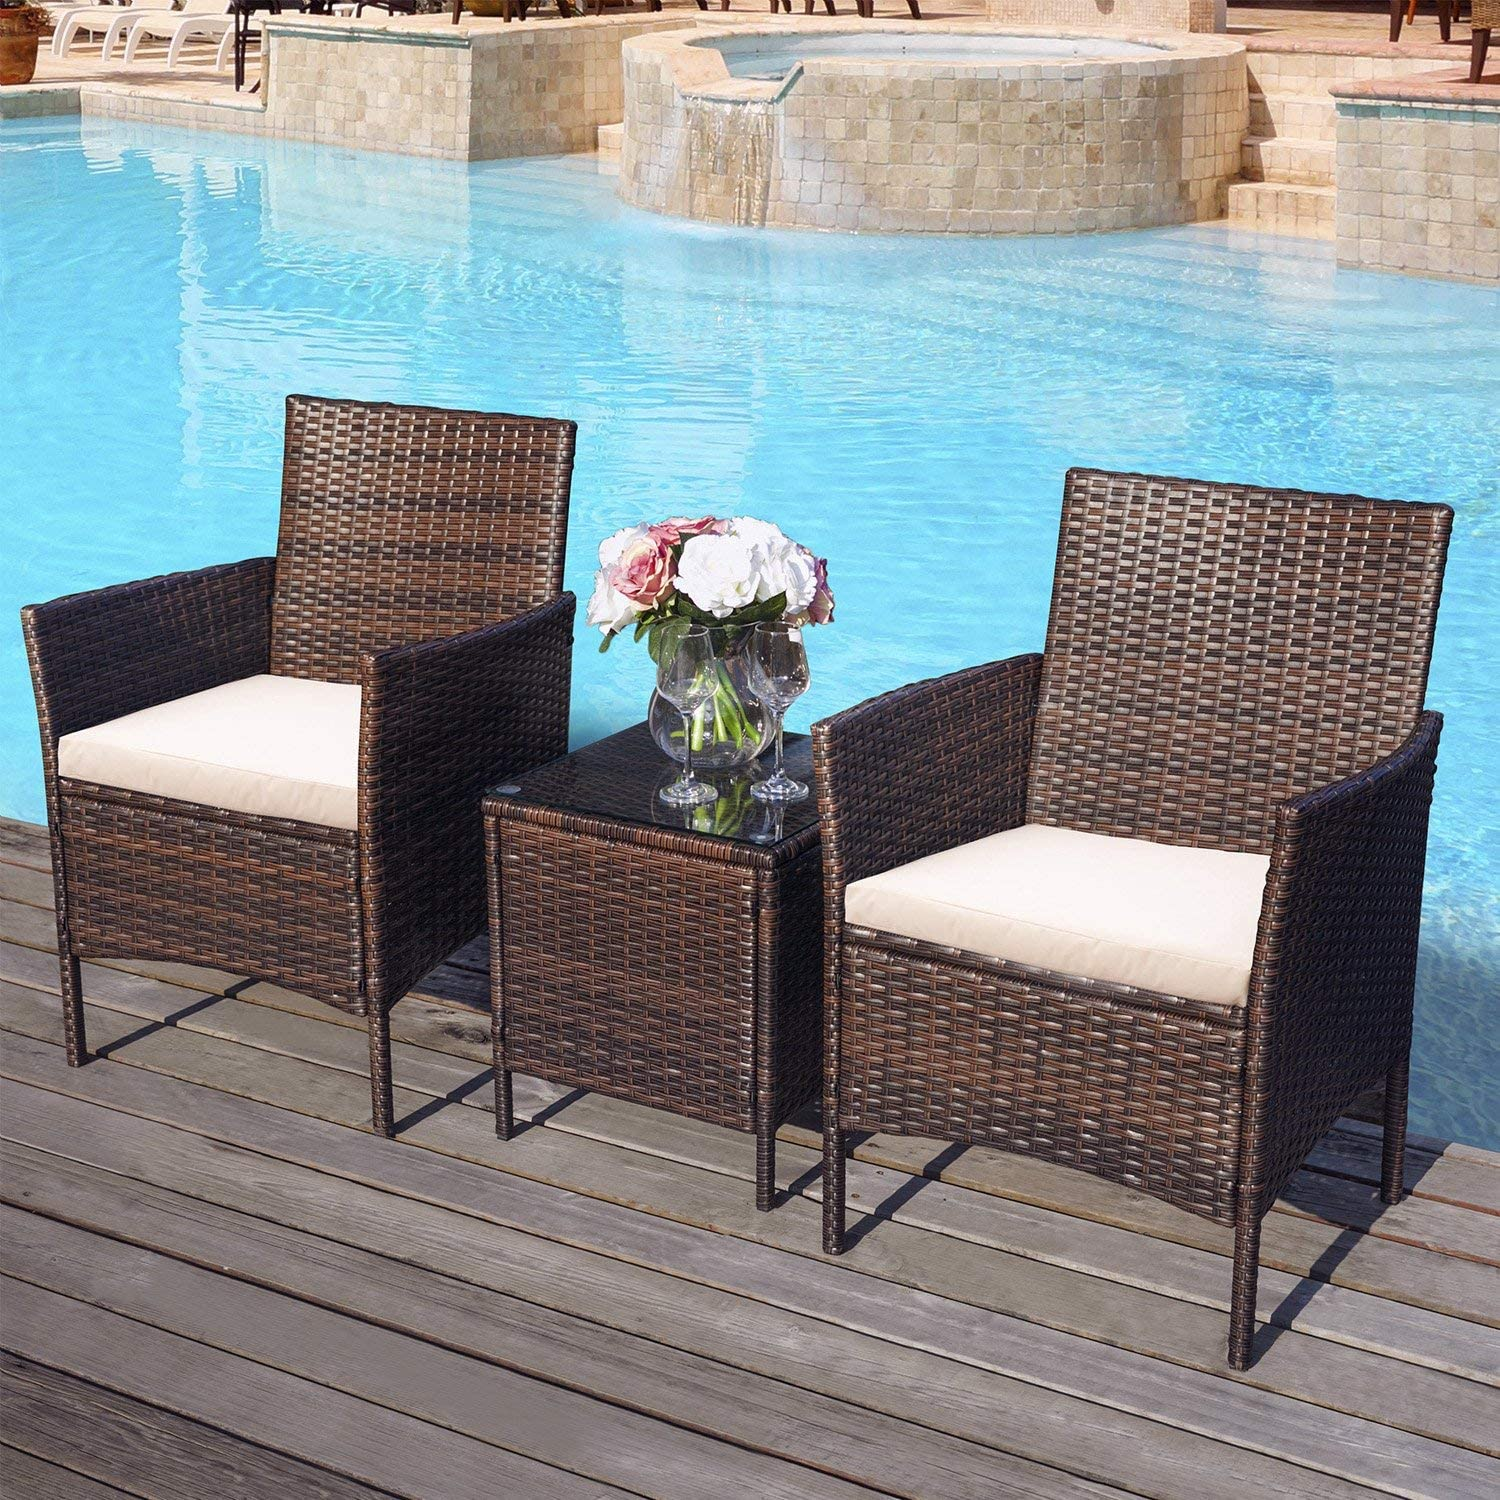 king do way Garden Furniture Covers,Outdoor Furniture Cover 8D